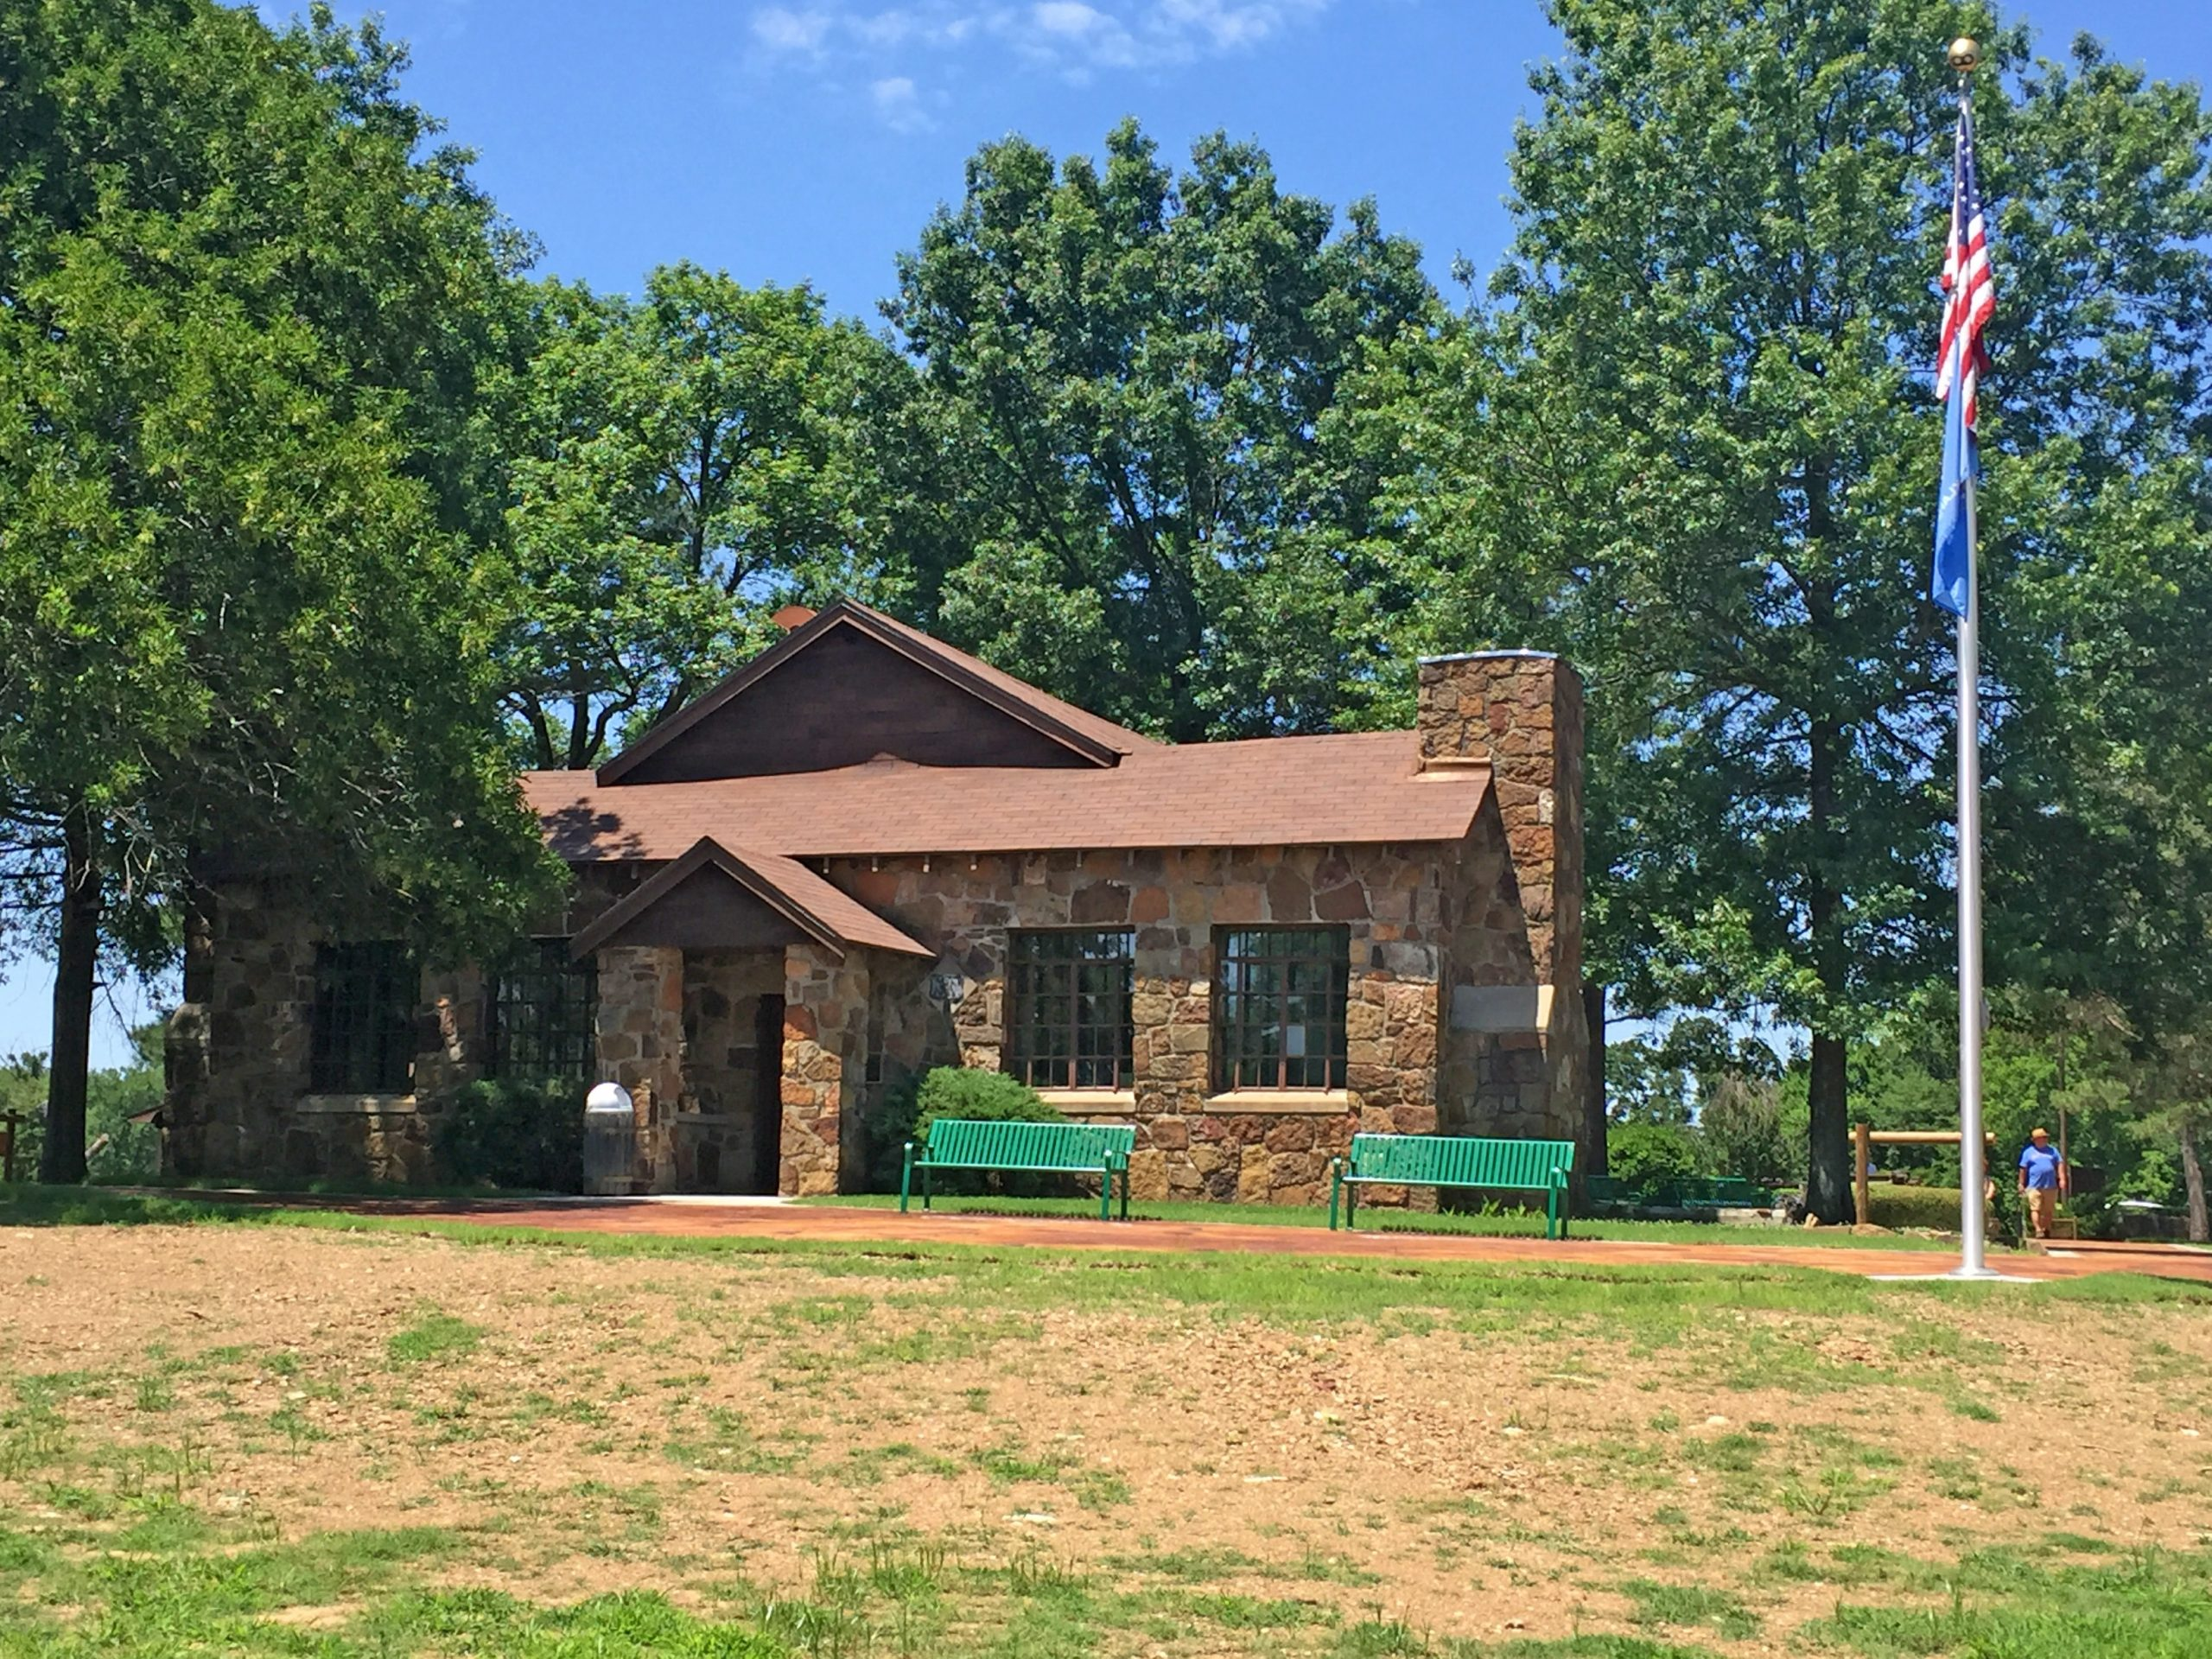 Cherokee Nation, Sequoyah's Cabin Museum